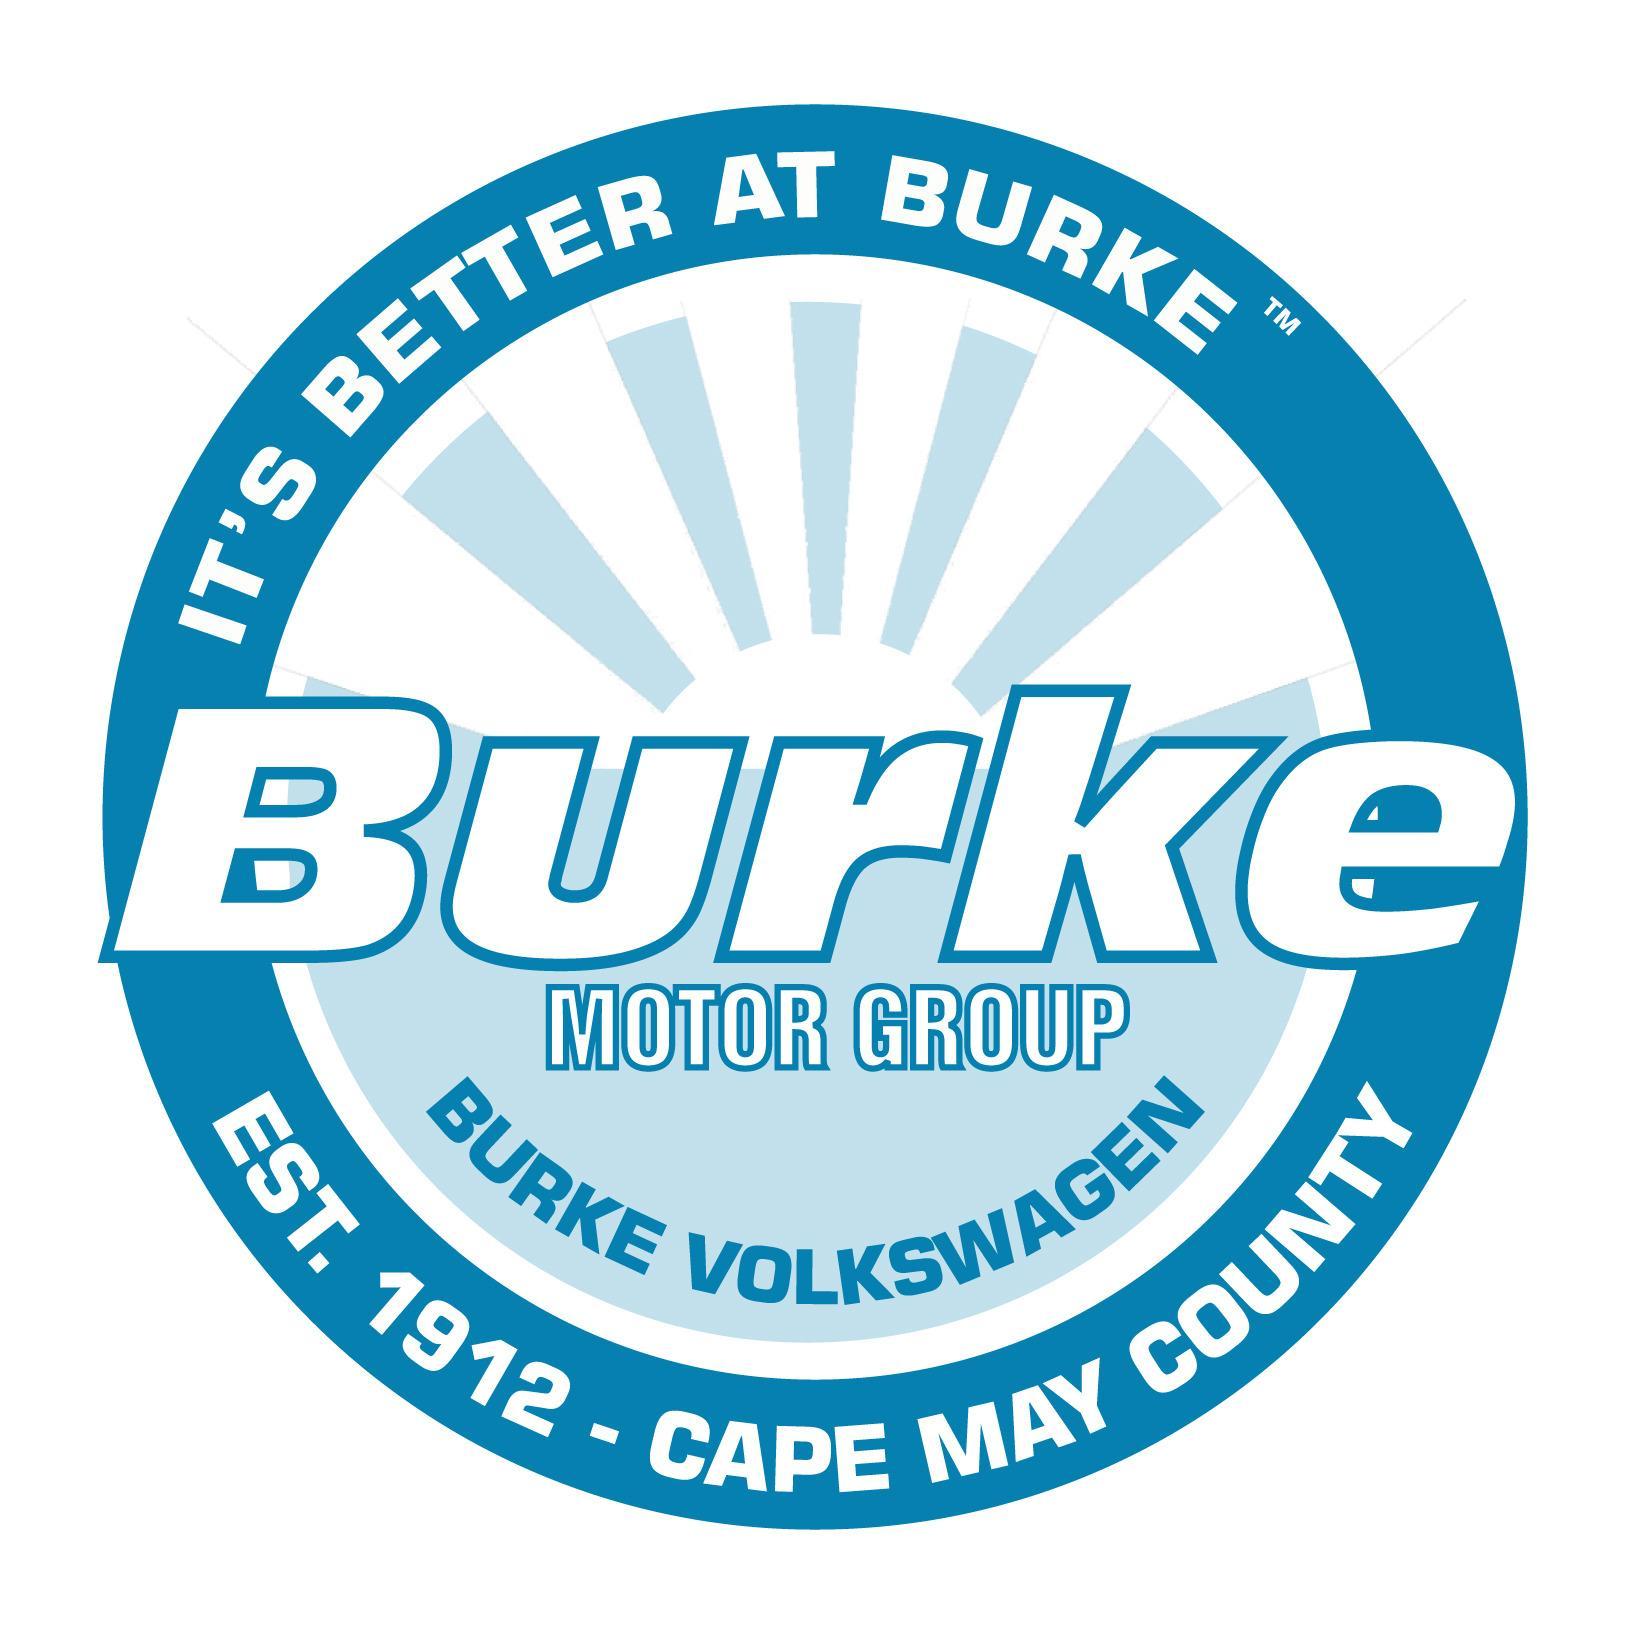 Burke Volkswagen At 519 Stone Harbor Blvd Cape May Court